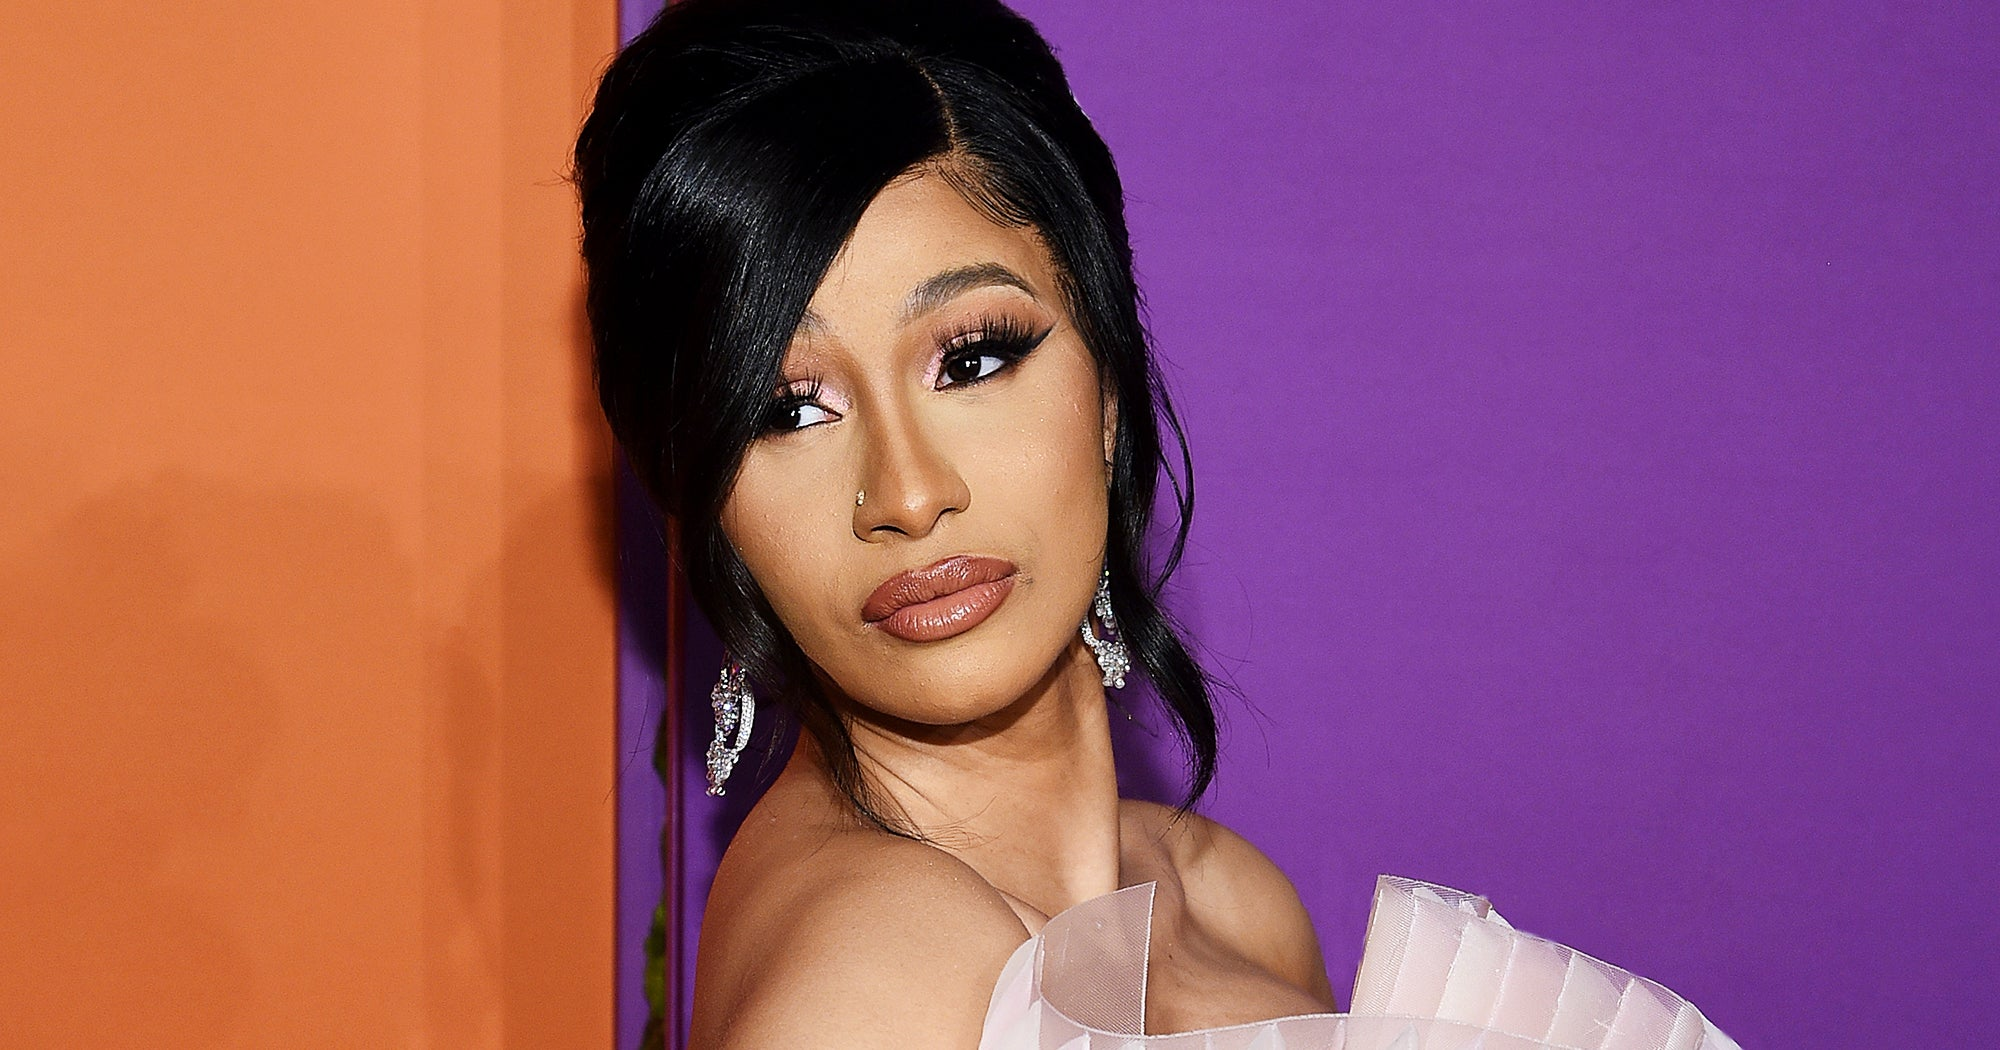 Cardi B S Tattoo Collection And Meanings Behind Them: Cardi B Tattoo Guide To All Each Meaning & Location